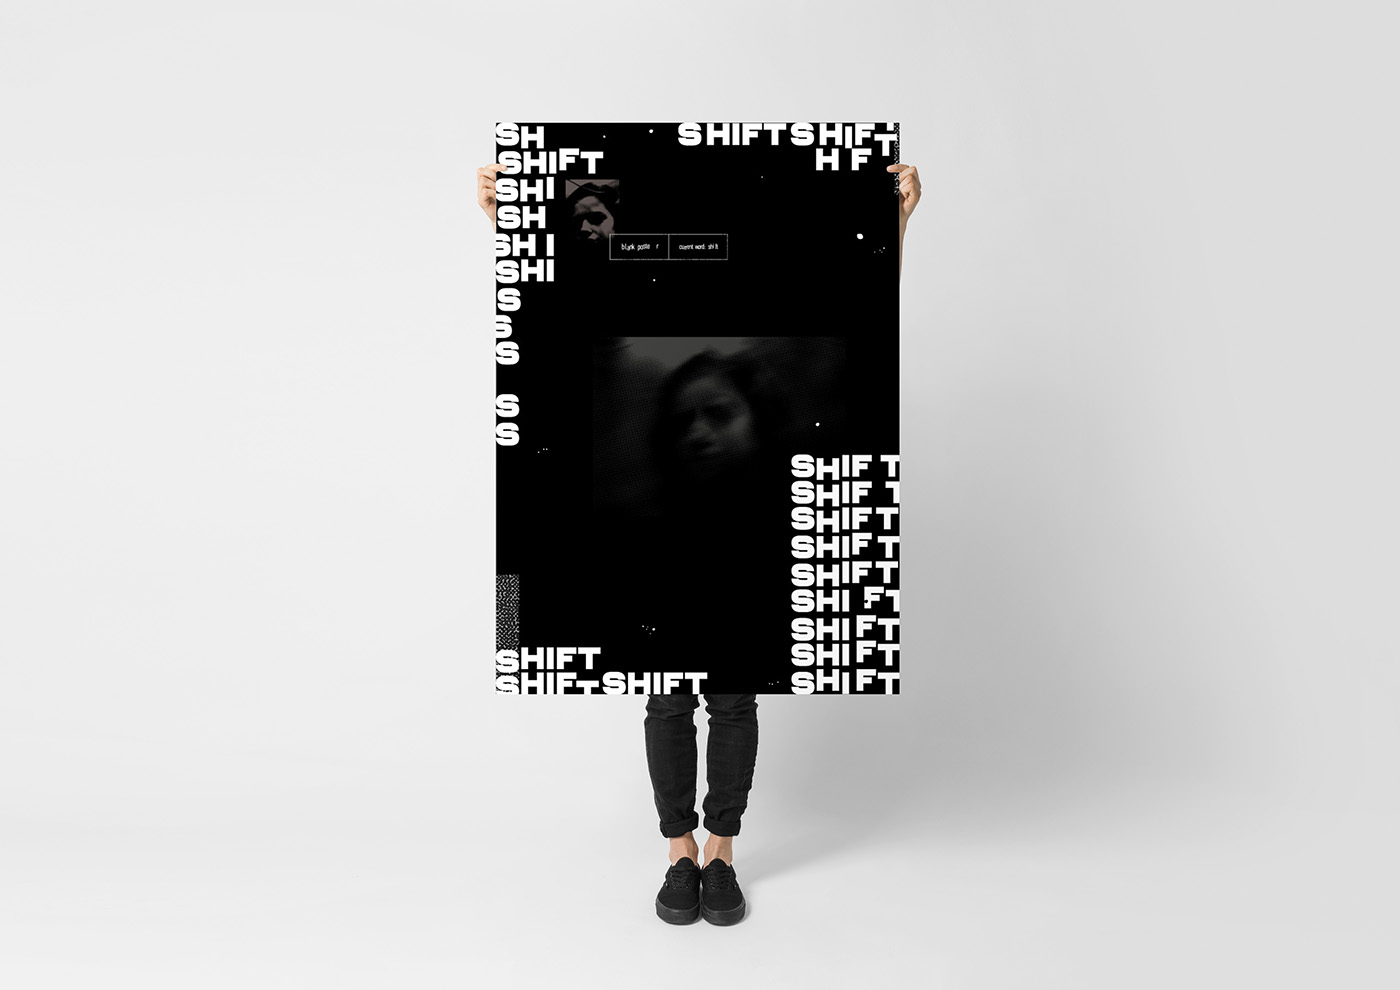 Shift x Blank Poster | Poster Collection on